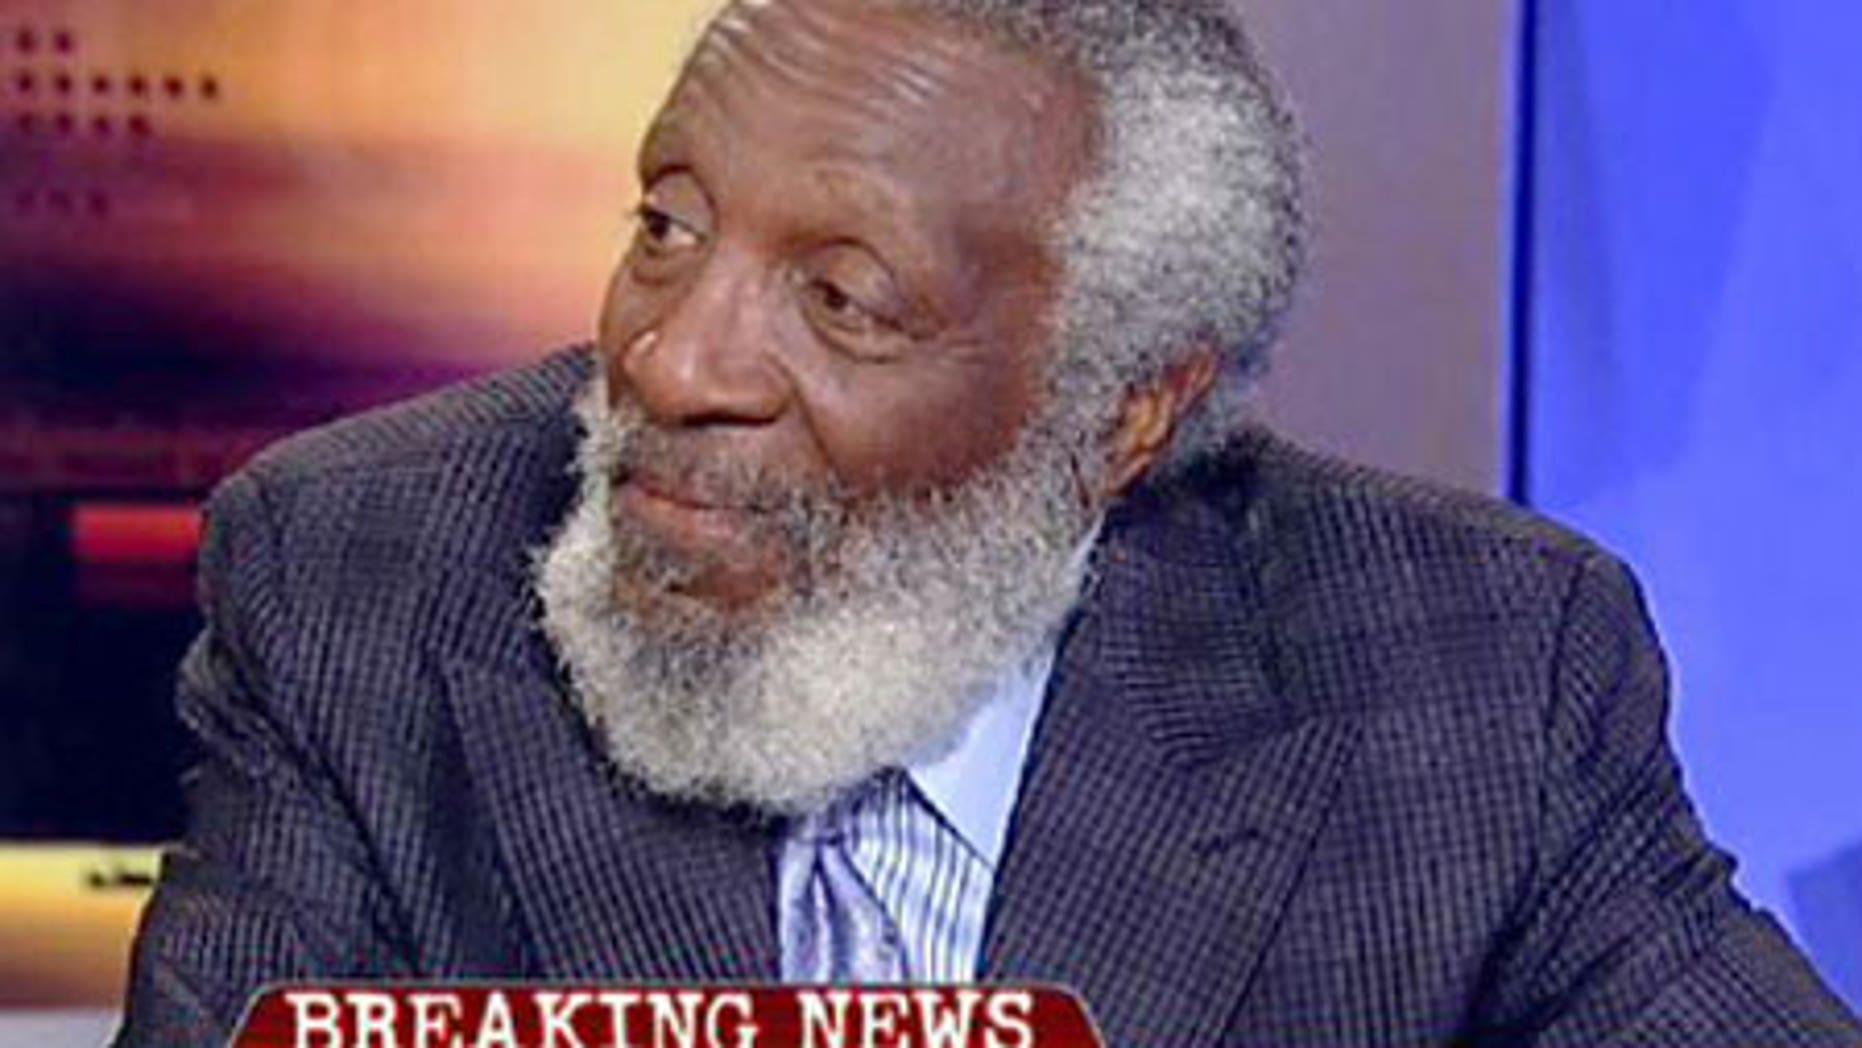 Dick Gregory believes Michael Jackson's sexual molestation trial took a lot out of him.